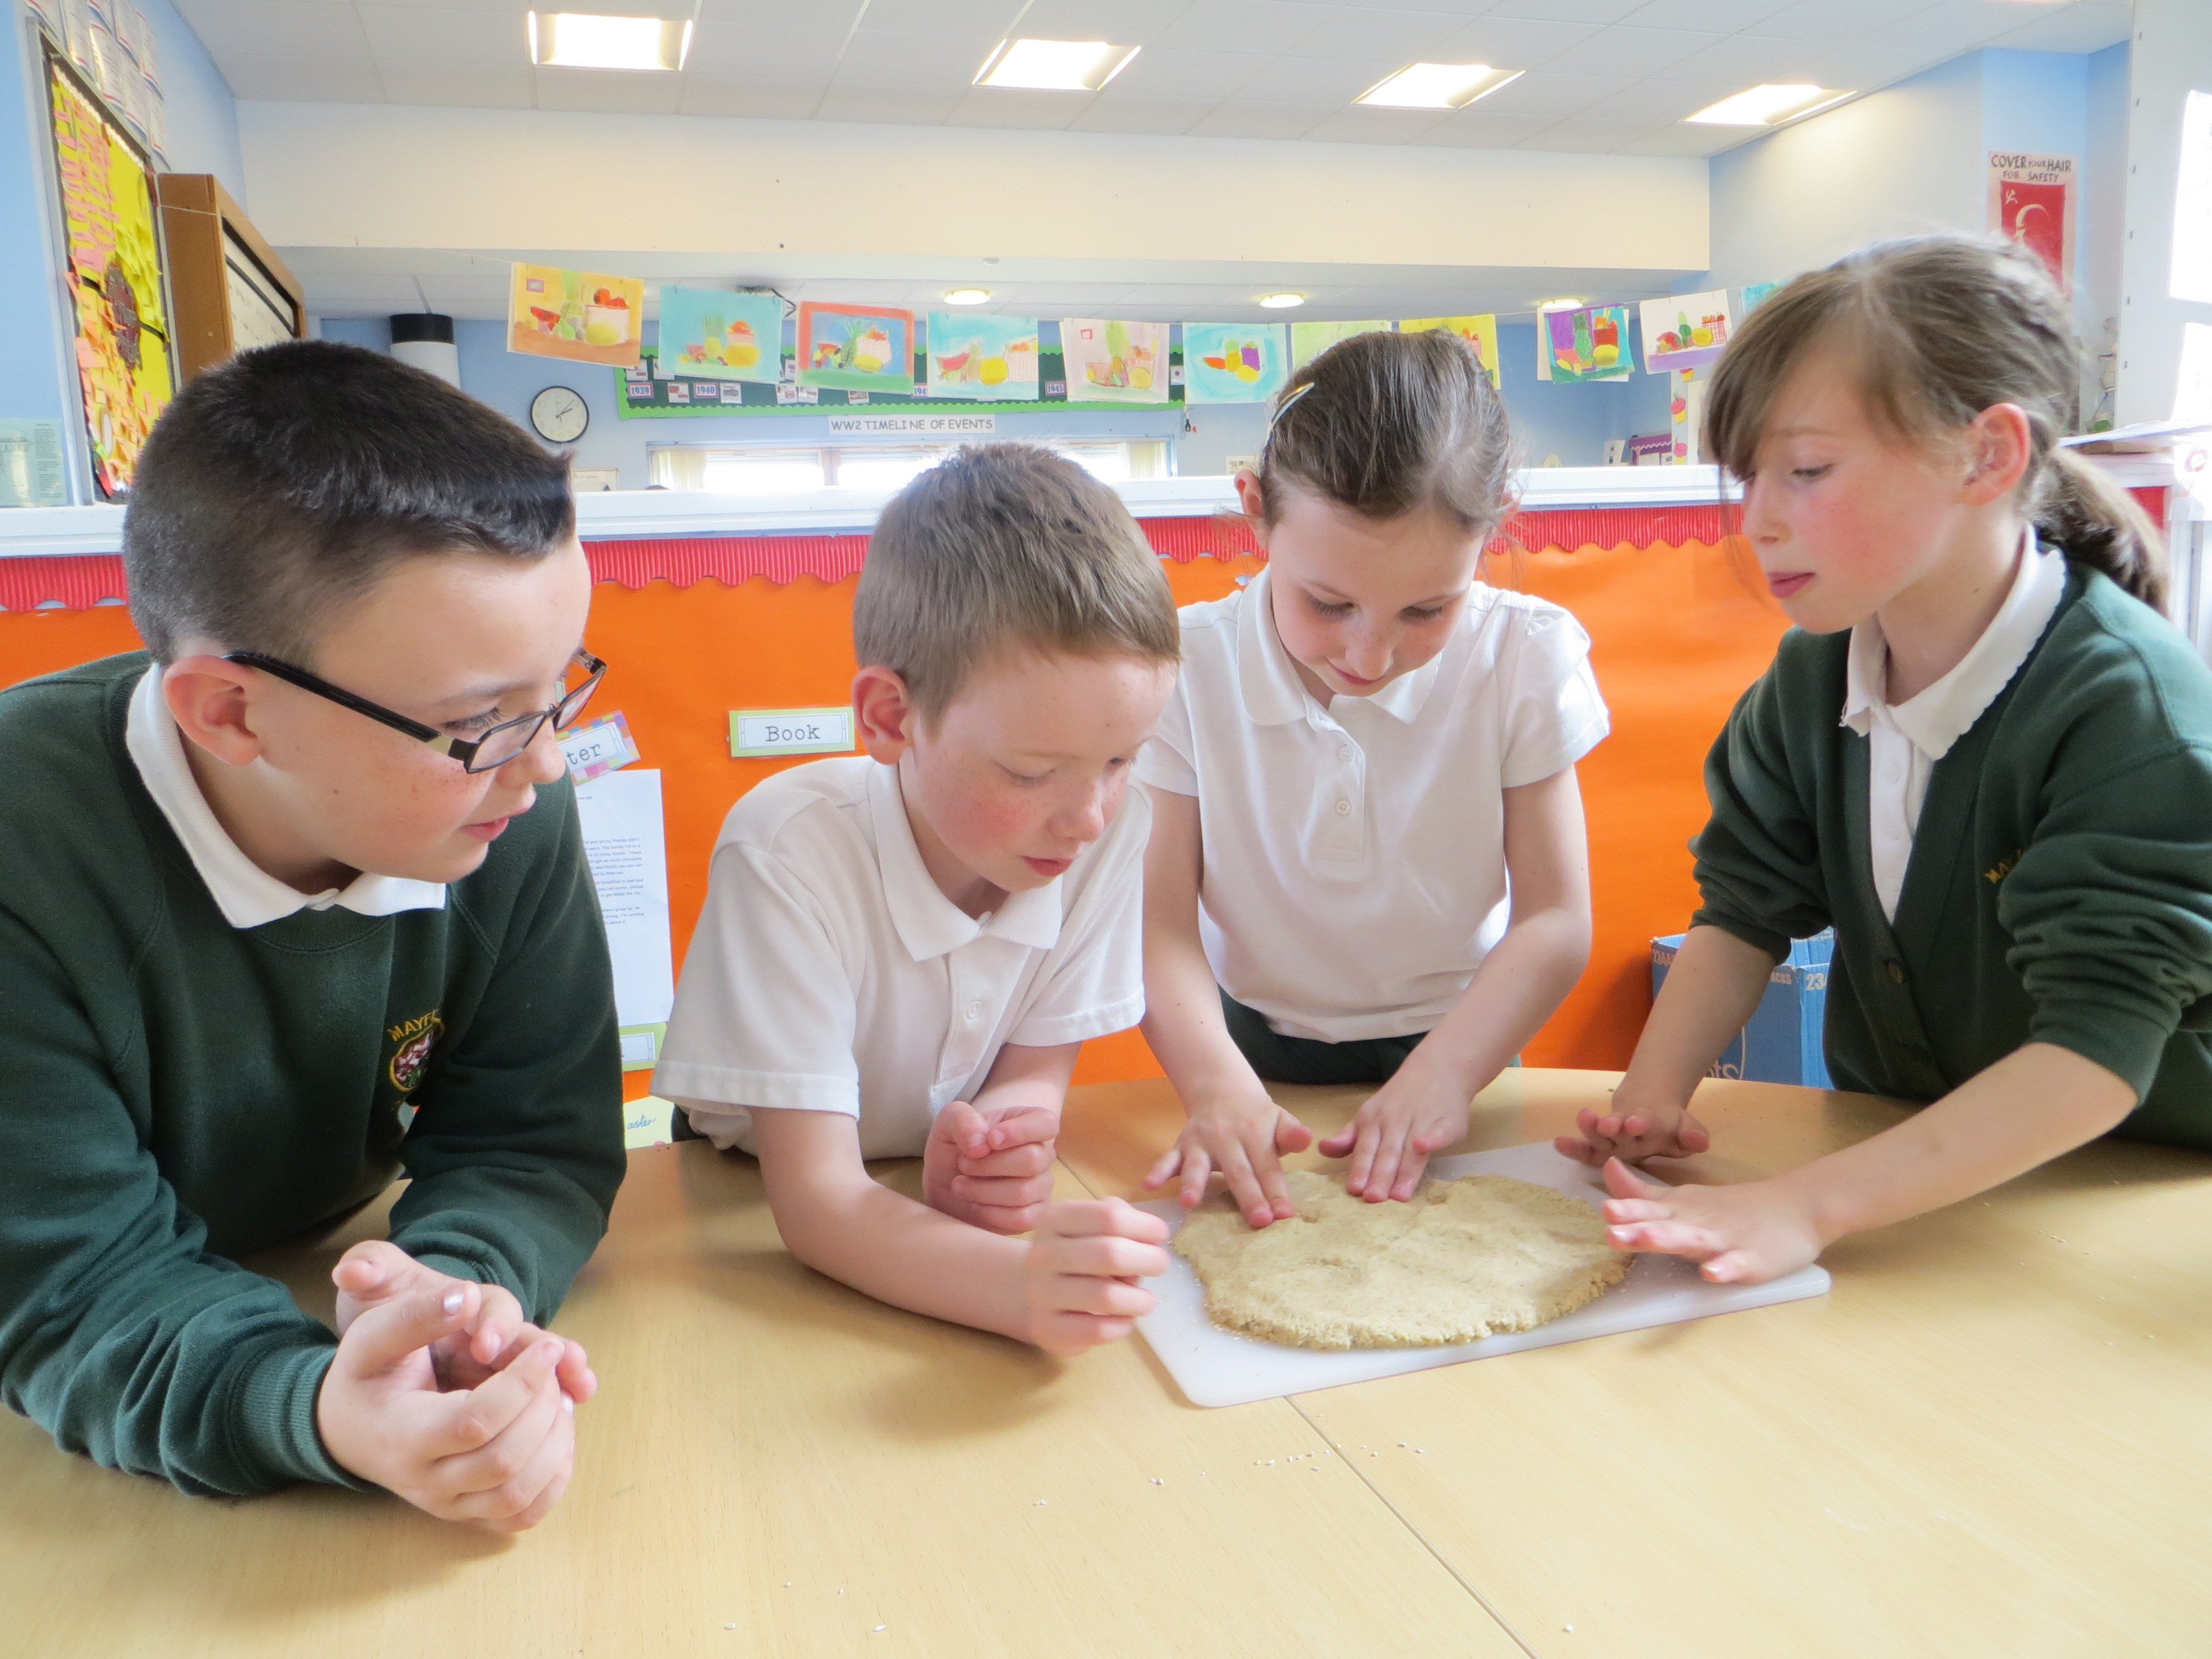 Food for Life Scotland Mayfield Primary School North Ayrshire oatcake workshop Scotland children making oatcakes in classroom.jpg